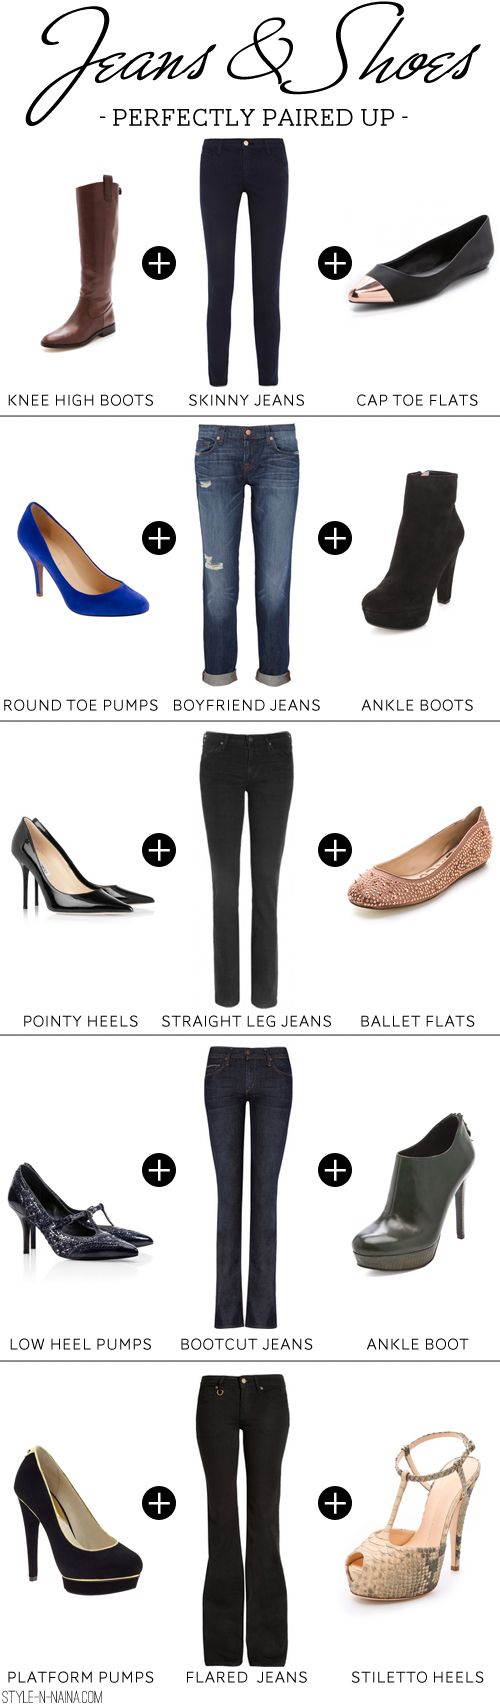 Jeans And Shoes- Perfectly Paired Up by Naina Singla : Lucky Community